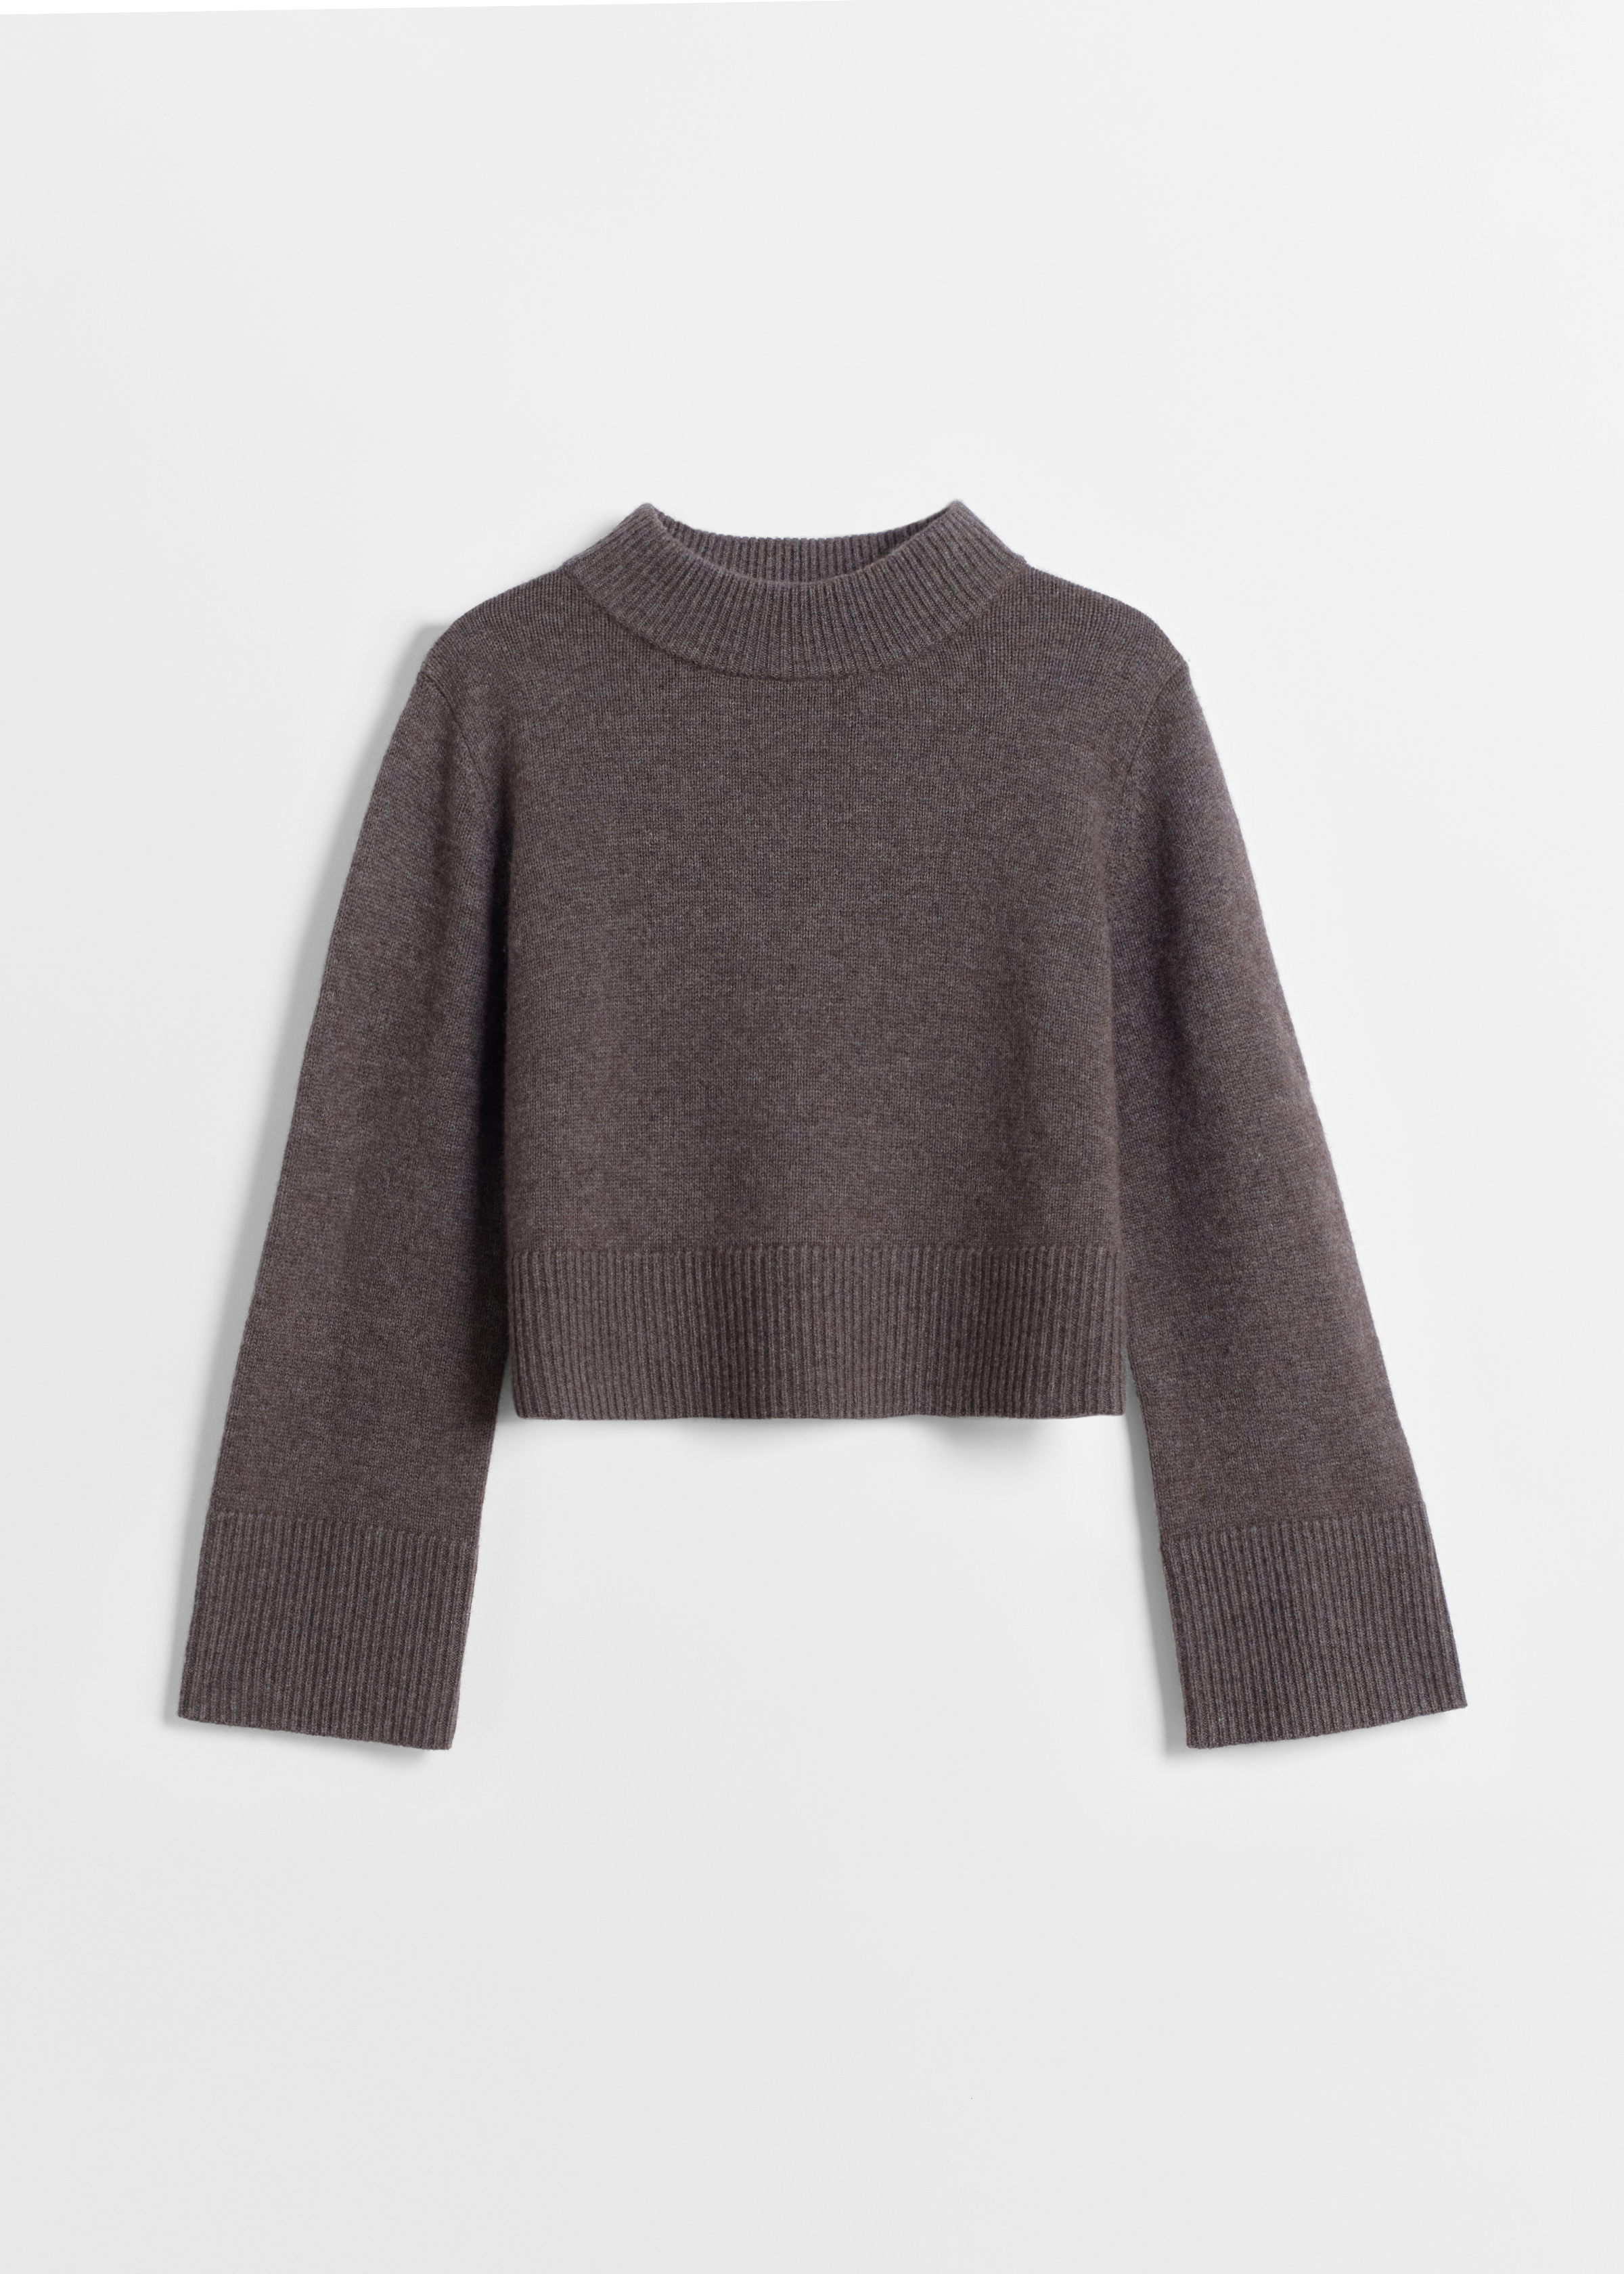 Boxy Crew Neck Sweater - Dove Grey in Brown by Co Collections